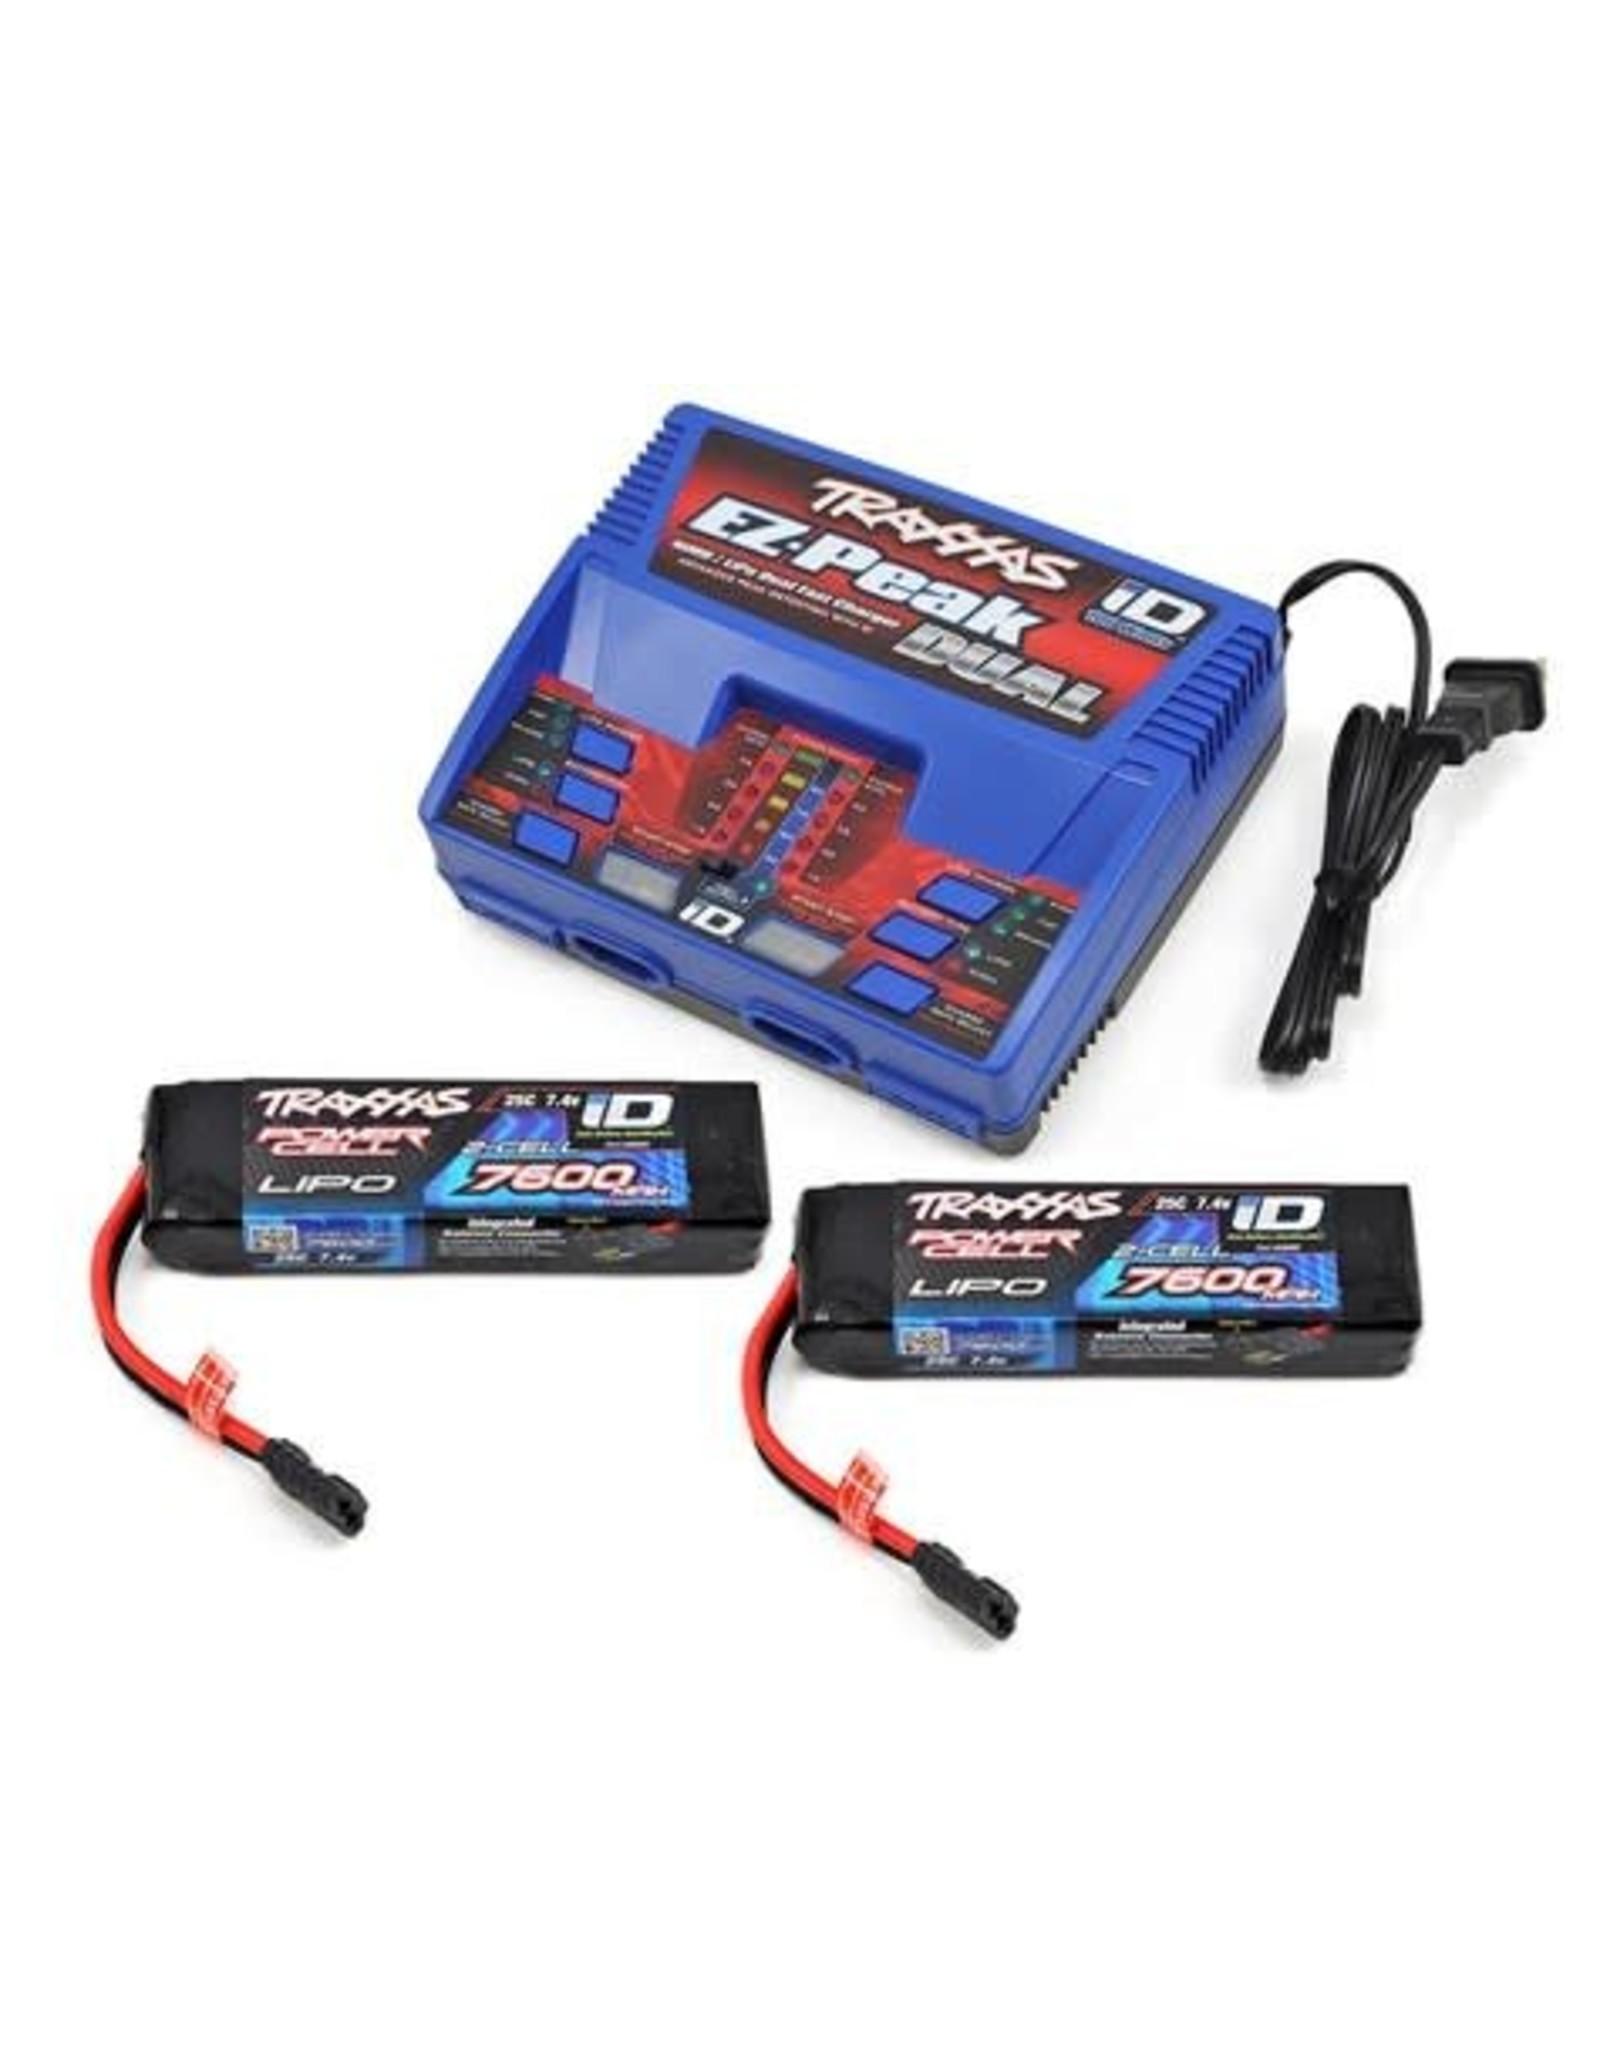 Traxxas 2S 7600mAh Completer Pack: (2) LiPo Battery, (1) EZ-Peak Dual Charger (2991)